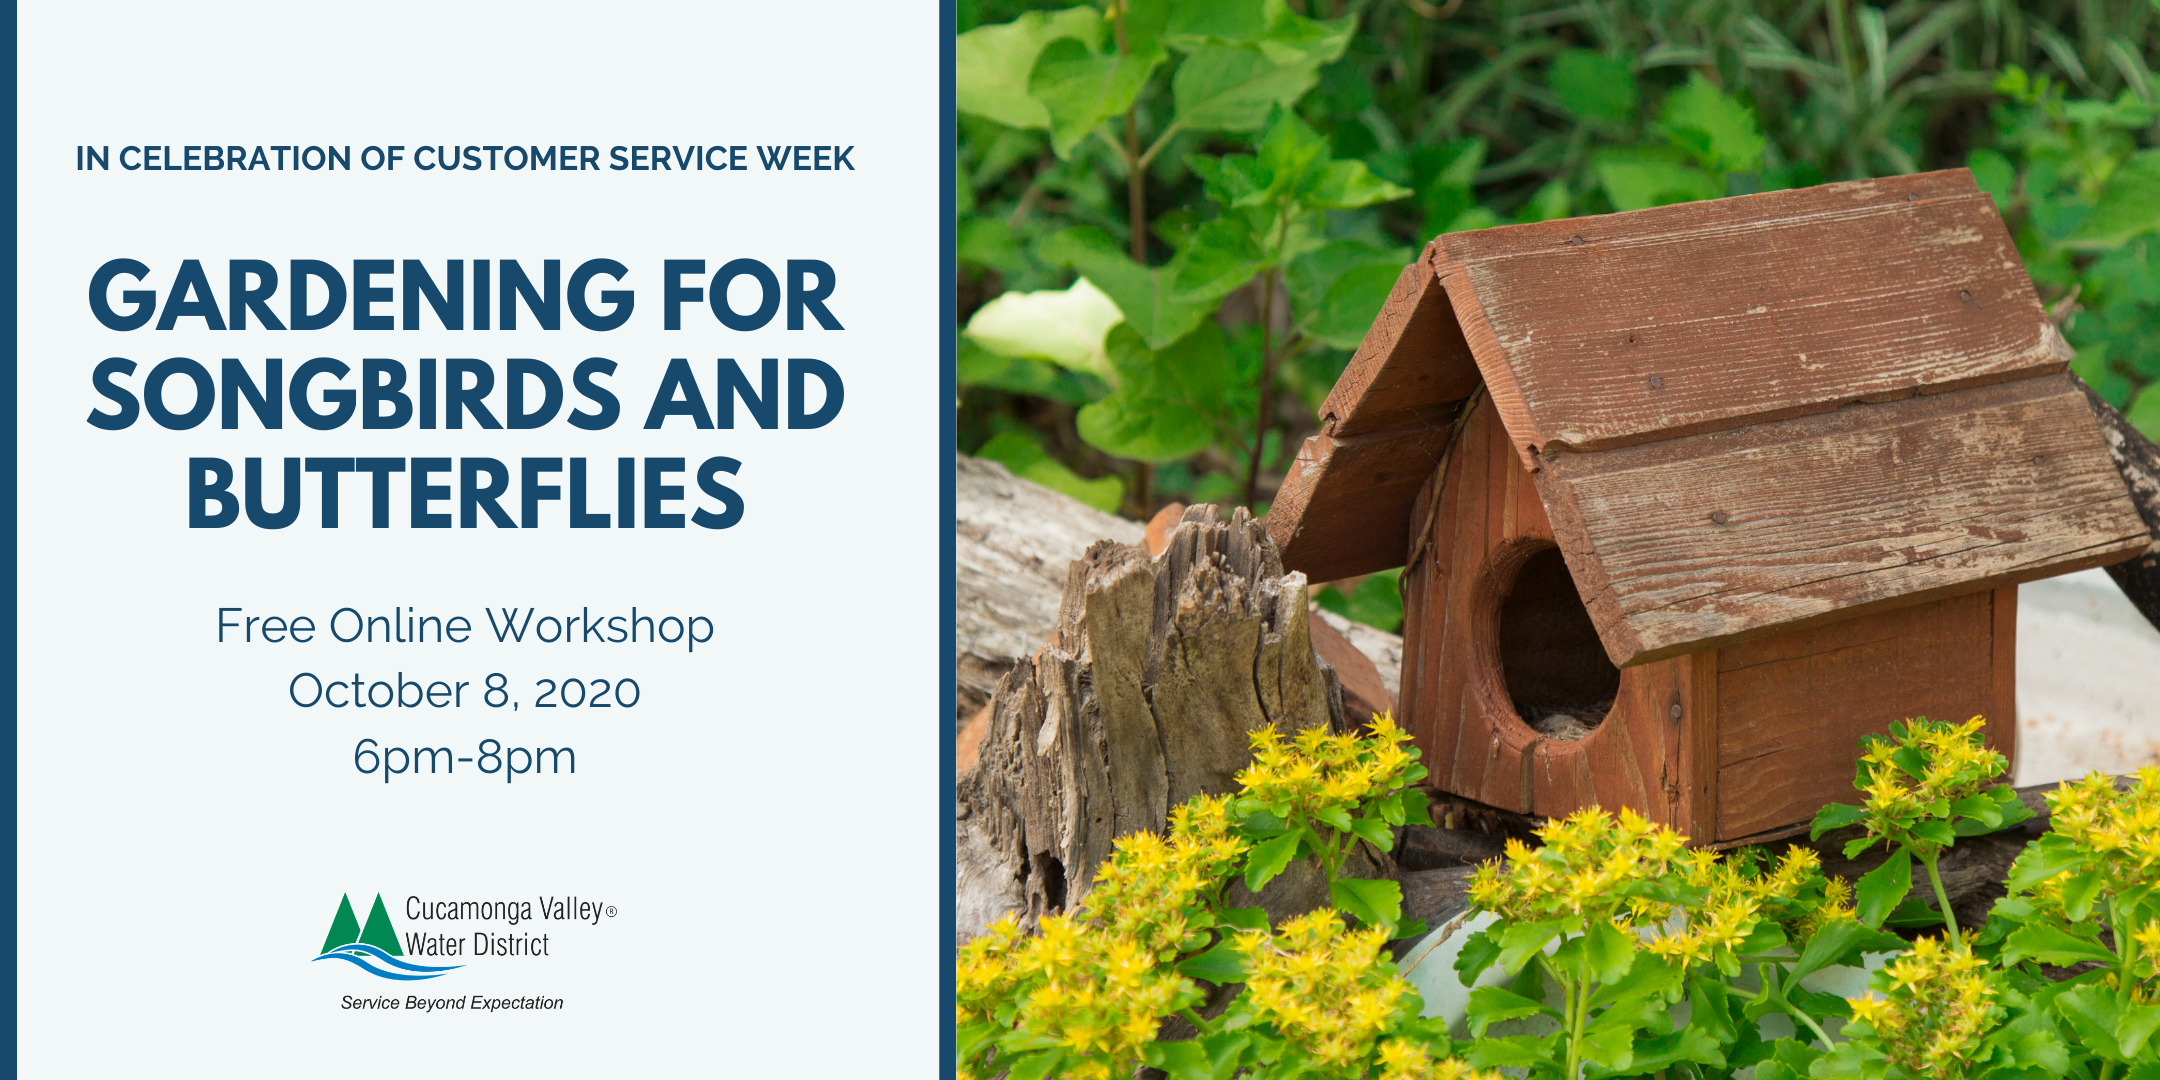 Gardening for songbirds and butterflies workshop